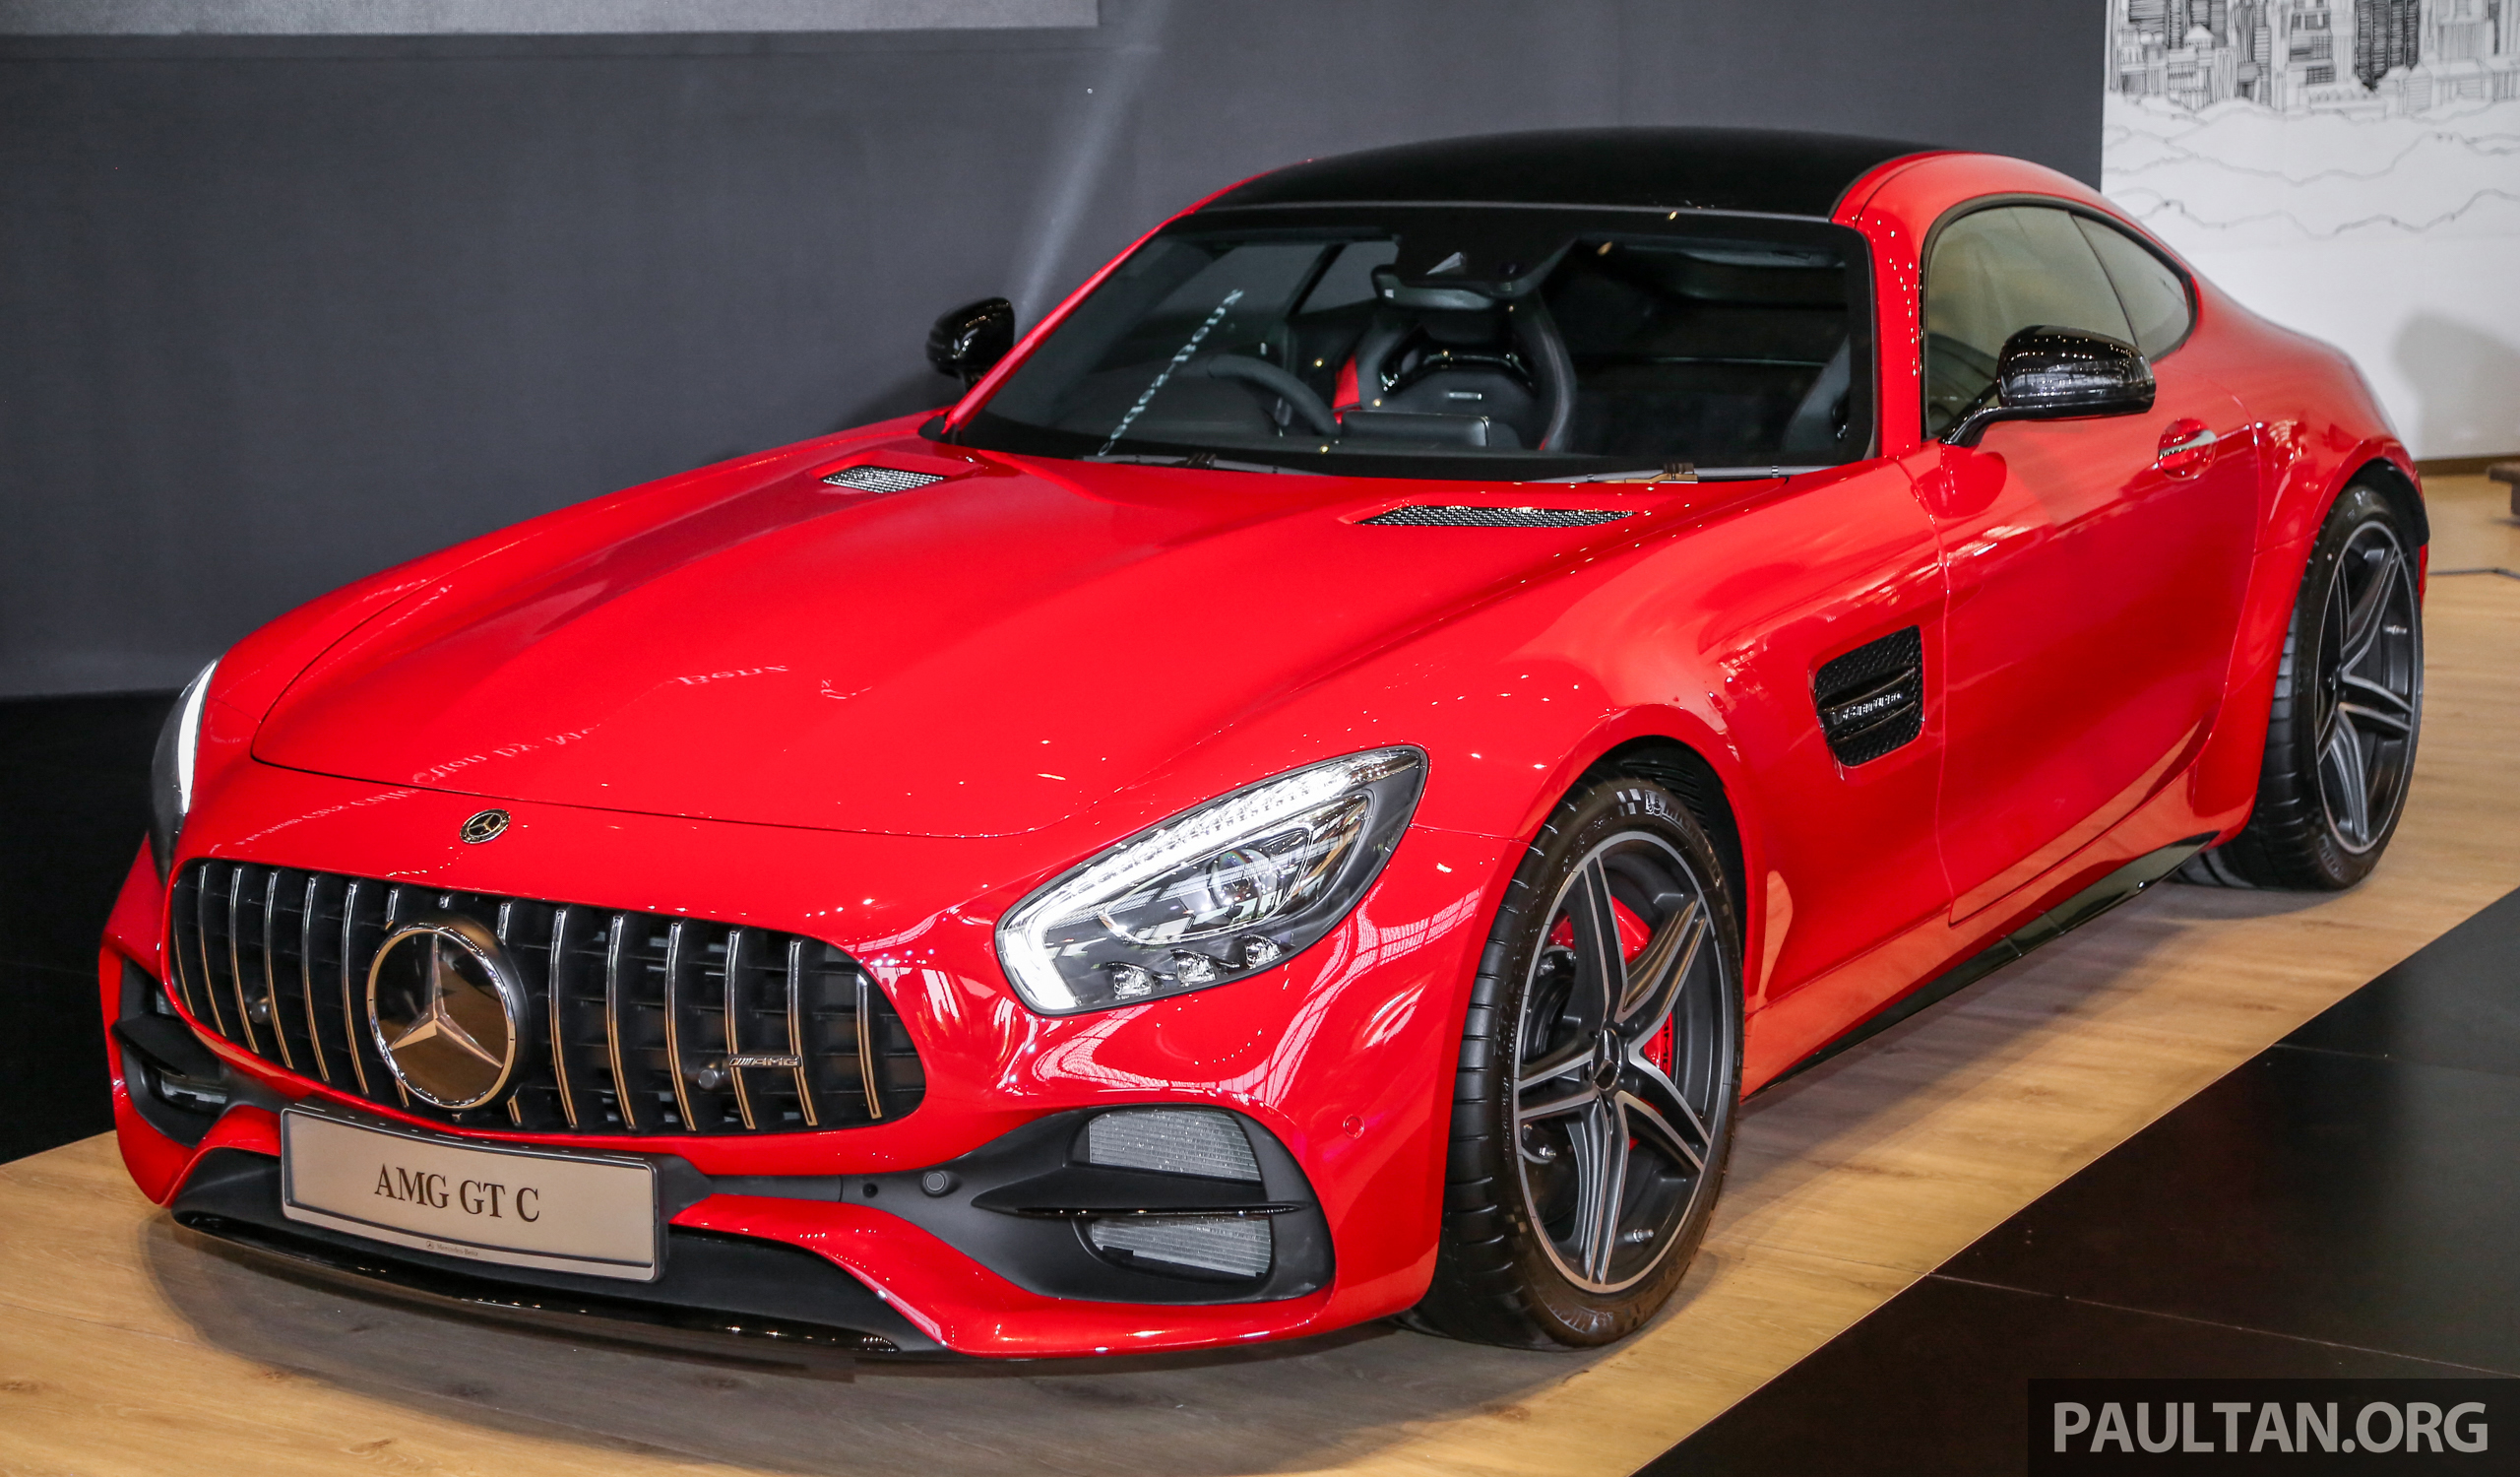 C190 Mercedes Amg Gt C Launched In Malaysia 557 Ps 0 100 Km H In 3 7 Seconds Price From Rm1 46 Mil Paultan Org